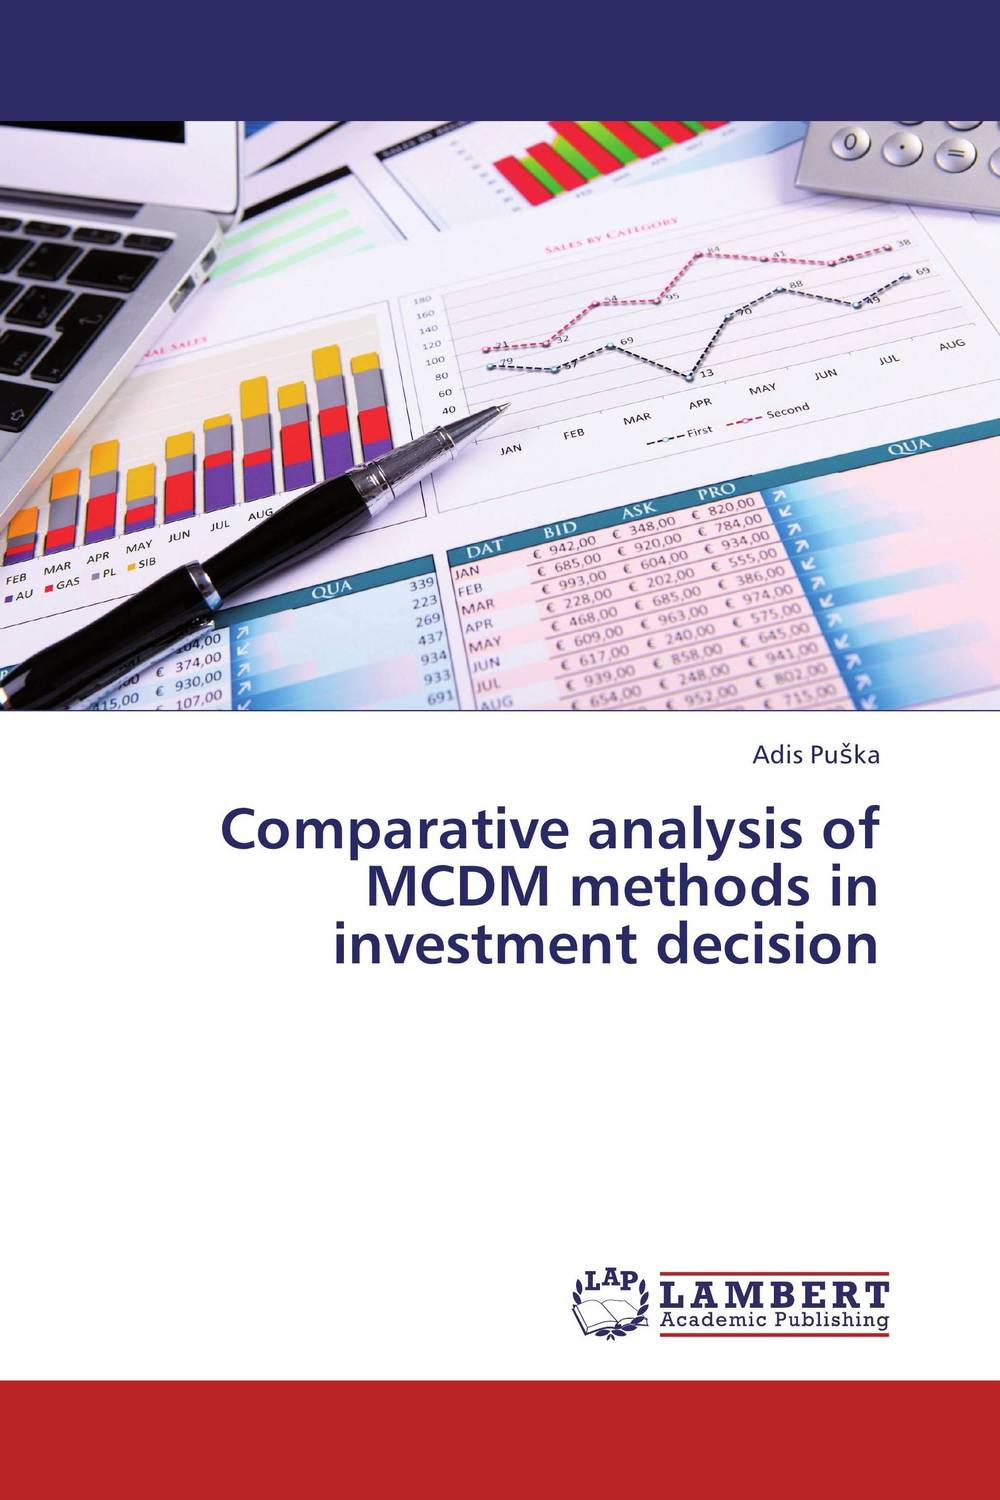 цены Comparative analysis of MCDM methods in investment decision